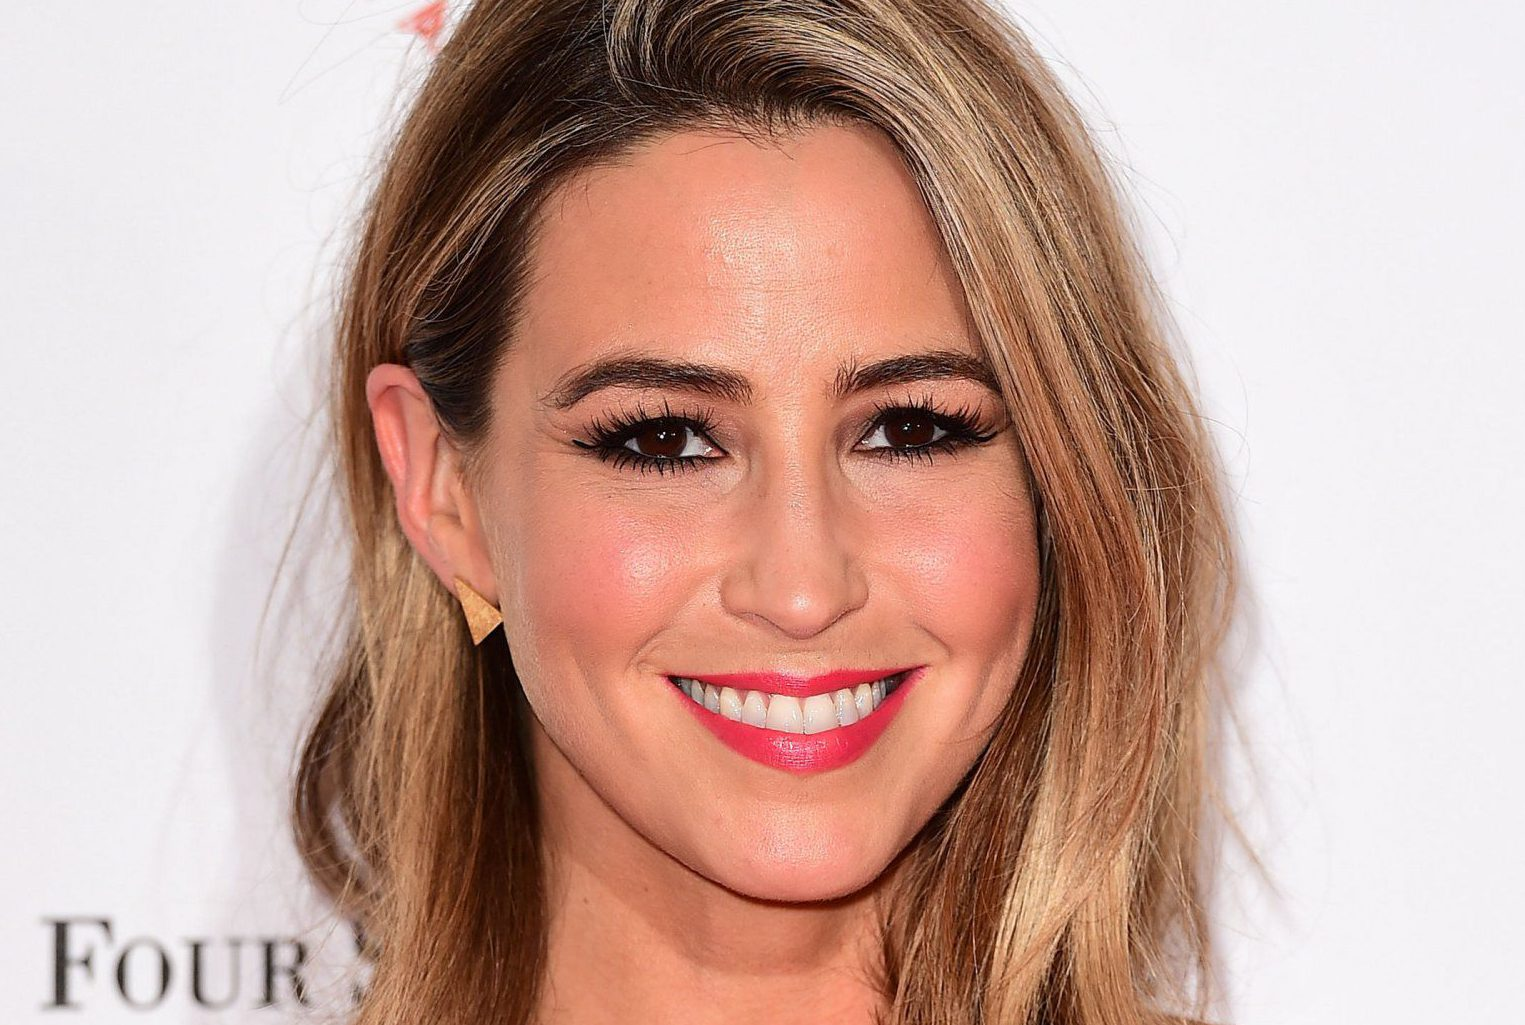 File photo dated 30/11/15 of former S Club 7 singer Rachel Stevens who is slated to join the line-up for this year's Celebrity MasterChef. PRESS ASSOCIATION Photo. Issue date: Saturday March 25, 2017. See PA story SHOWBIZ Stevens. Photo credit should read: Ian West/PA Wire